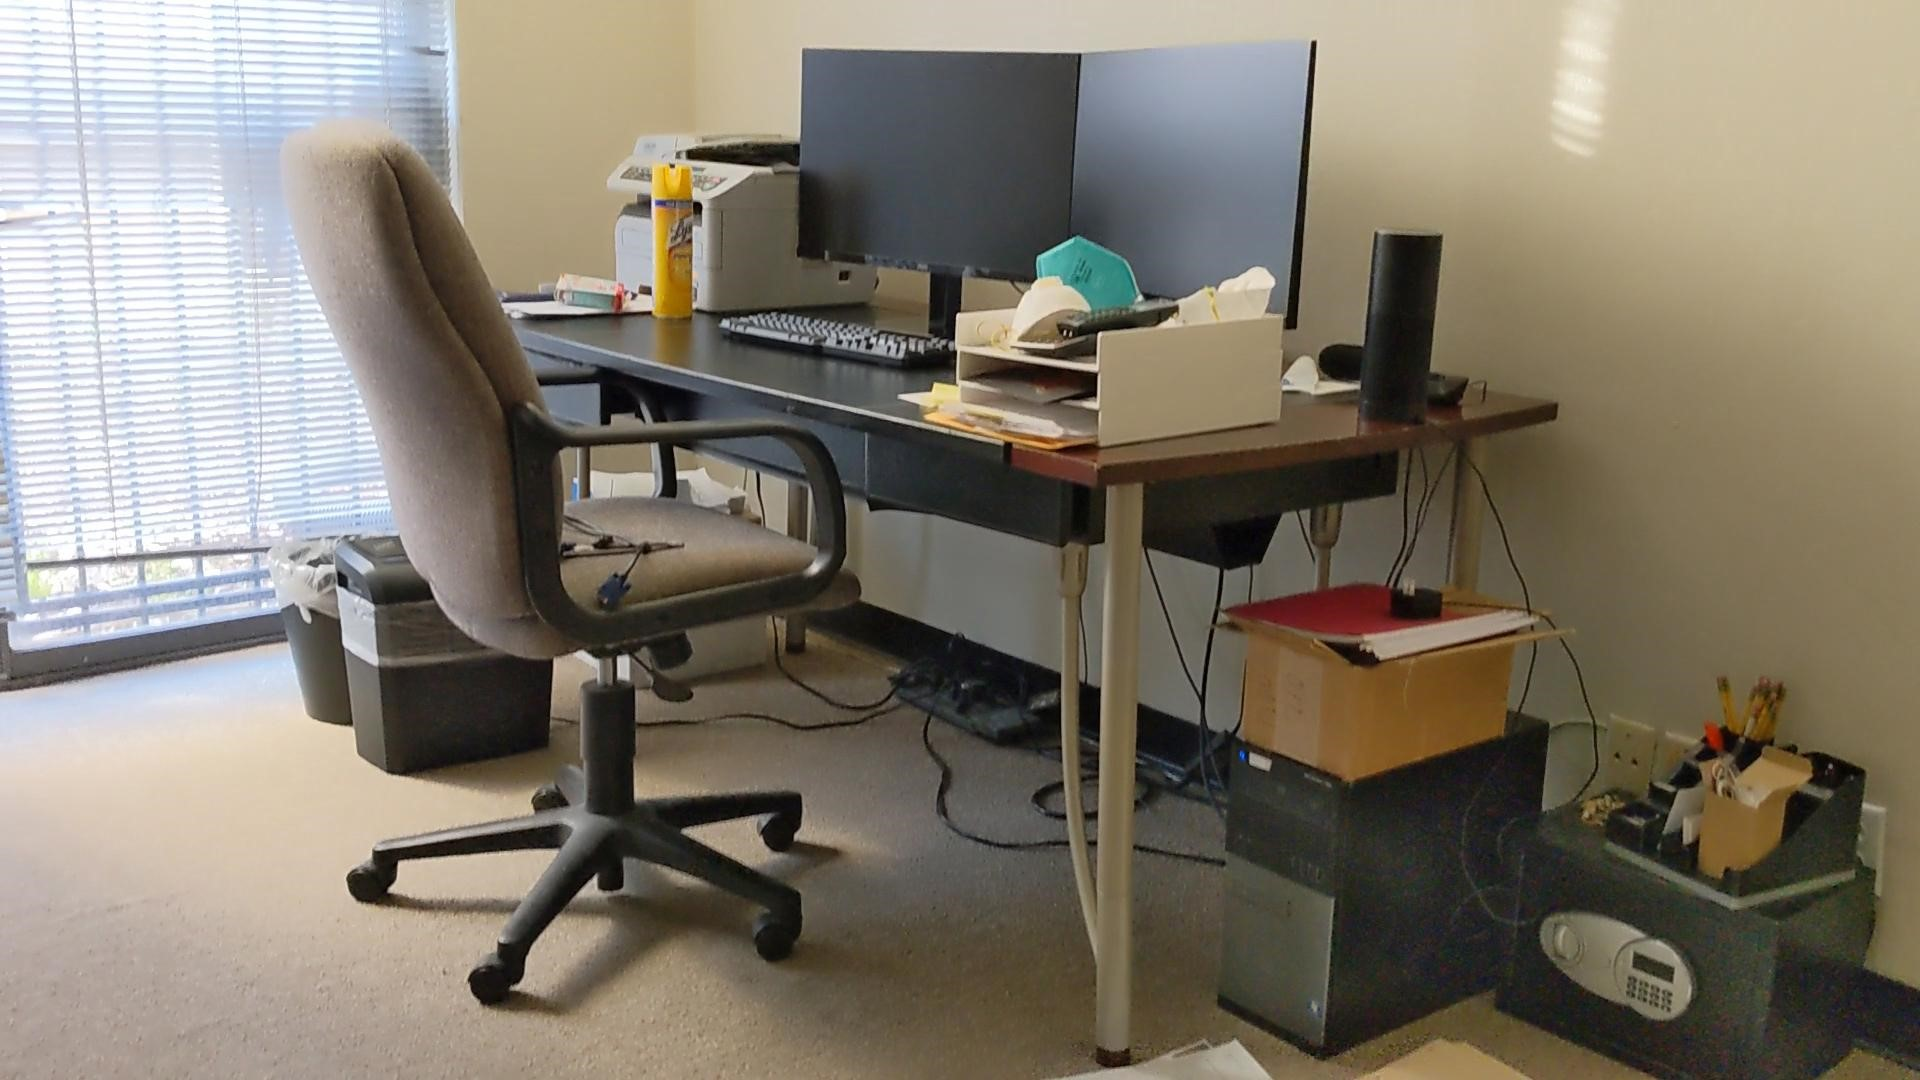 Amitha's work desk looks generic and does not match her farmhouse aesthetic.